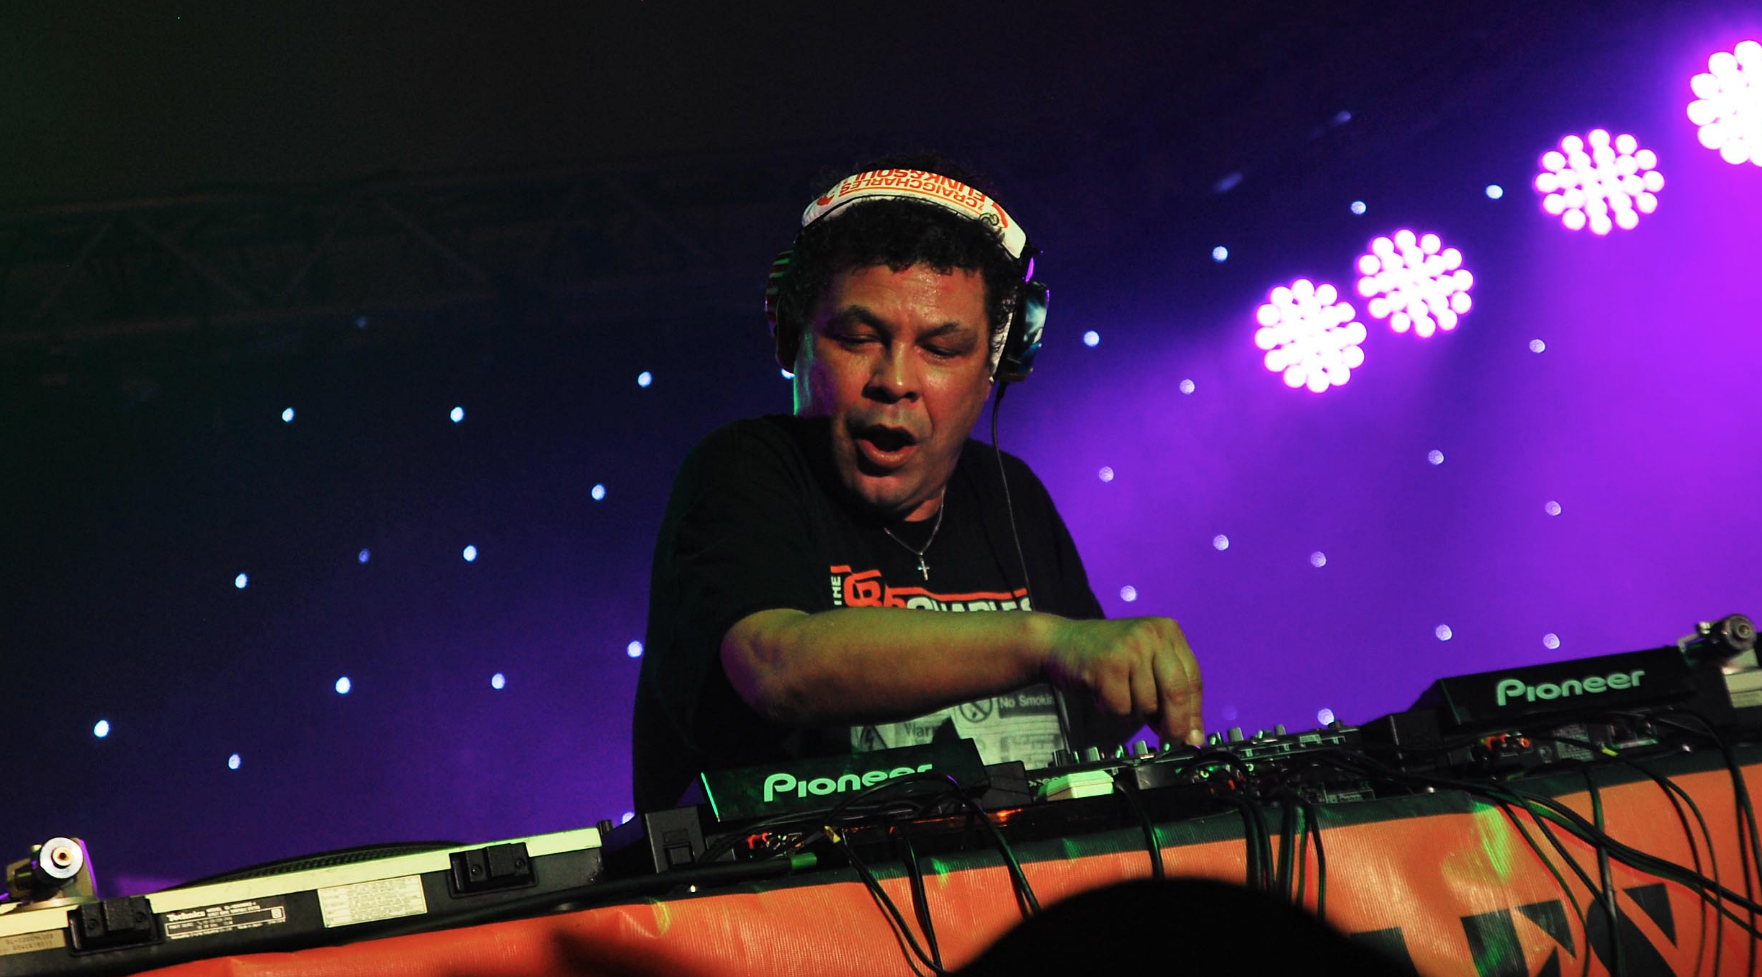 Red Dwarf star to DJ in Shrewsbury